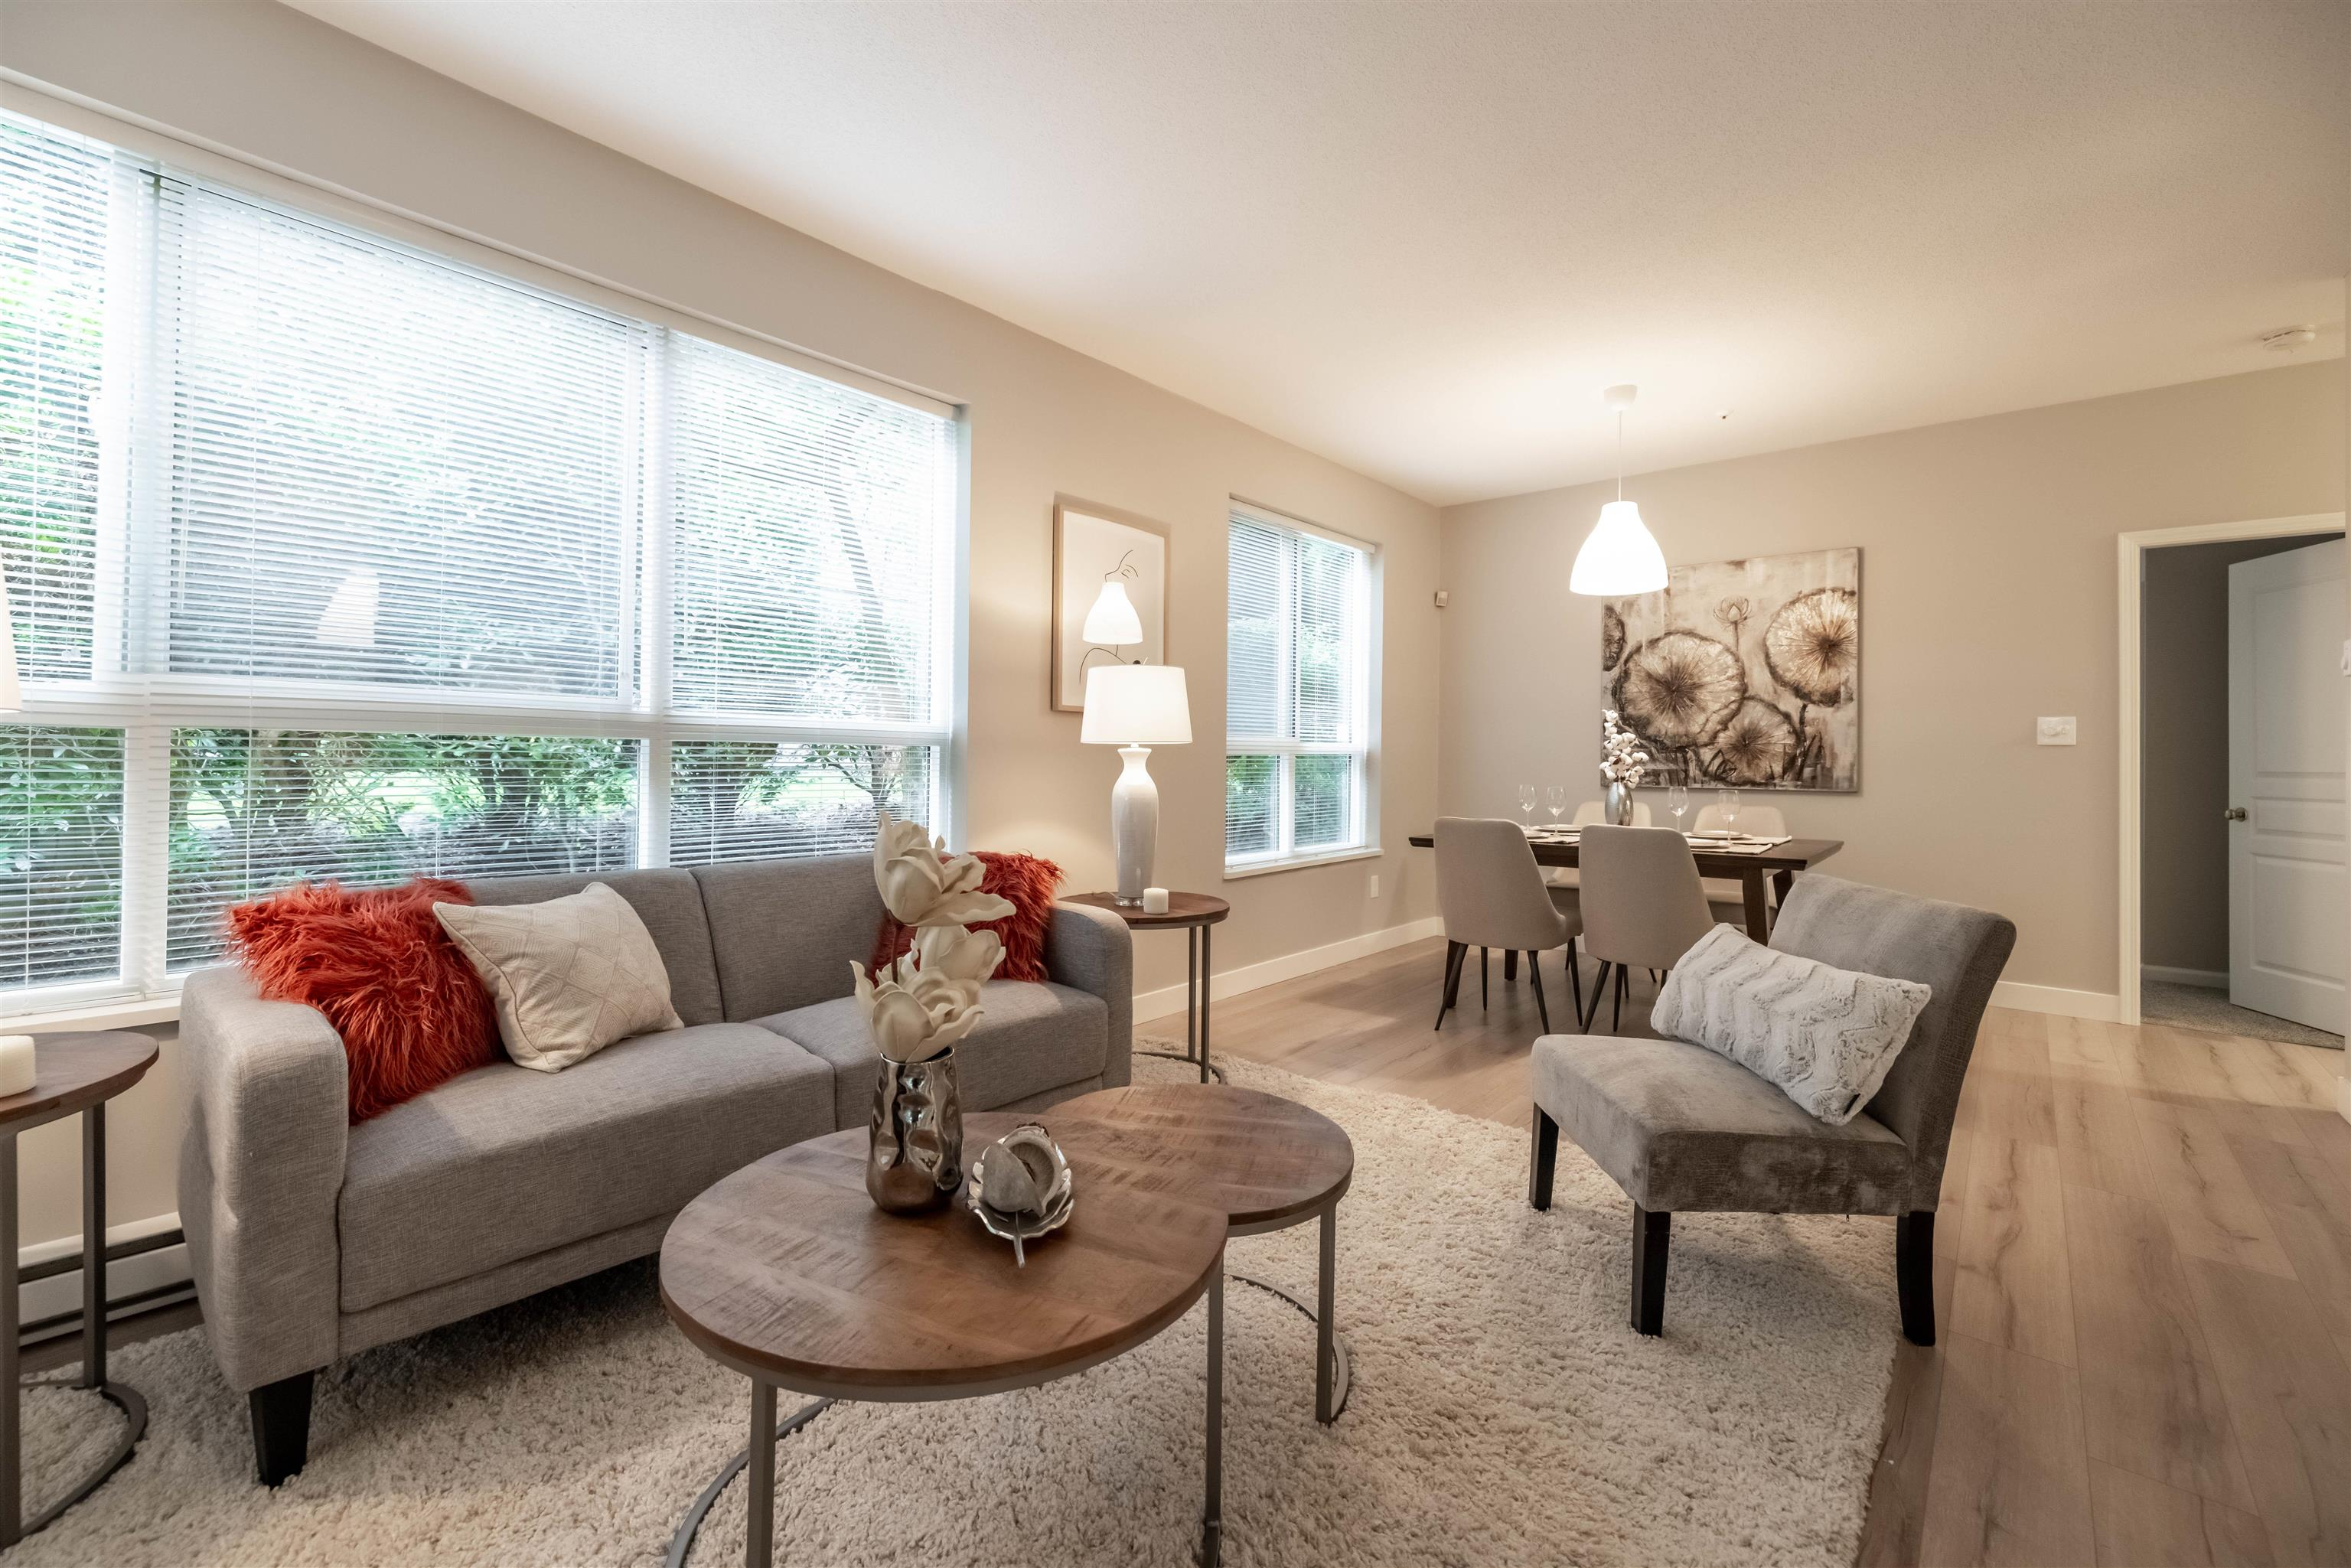 105 8139 121A STREET - Queen Mary Park Surrey Apartment/Condo for sale, 2 Bedrooms (R2623168) - #1